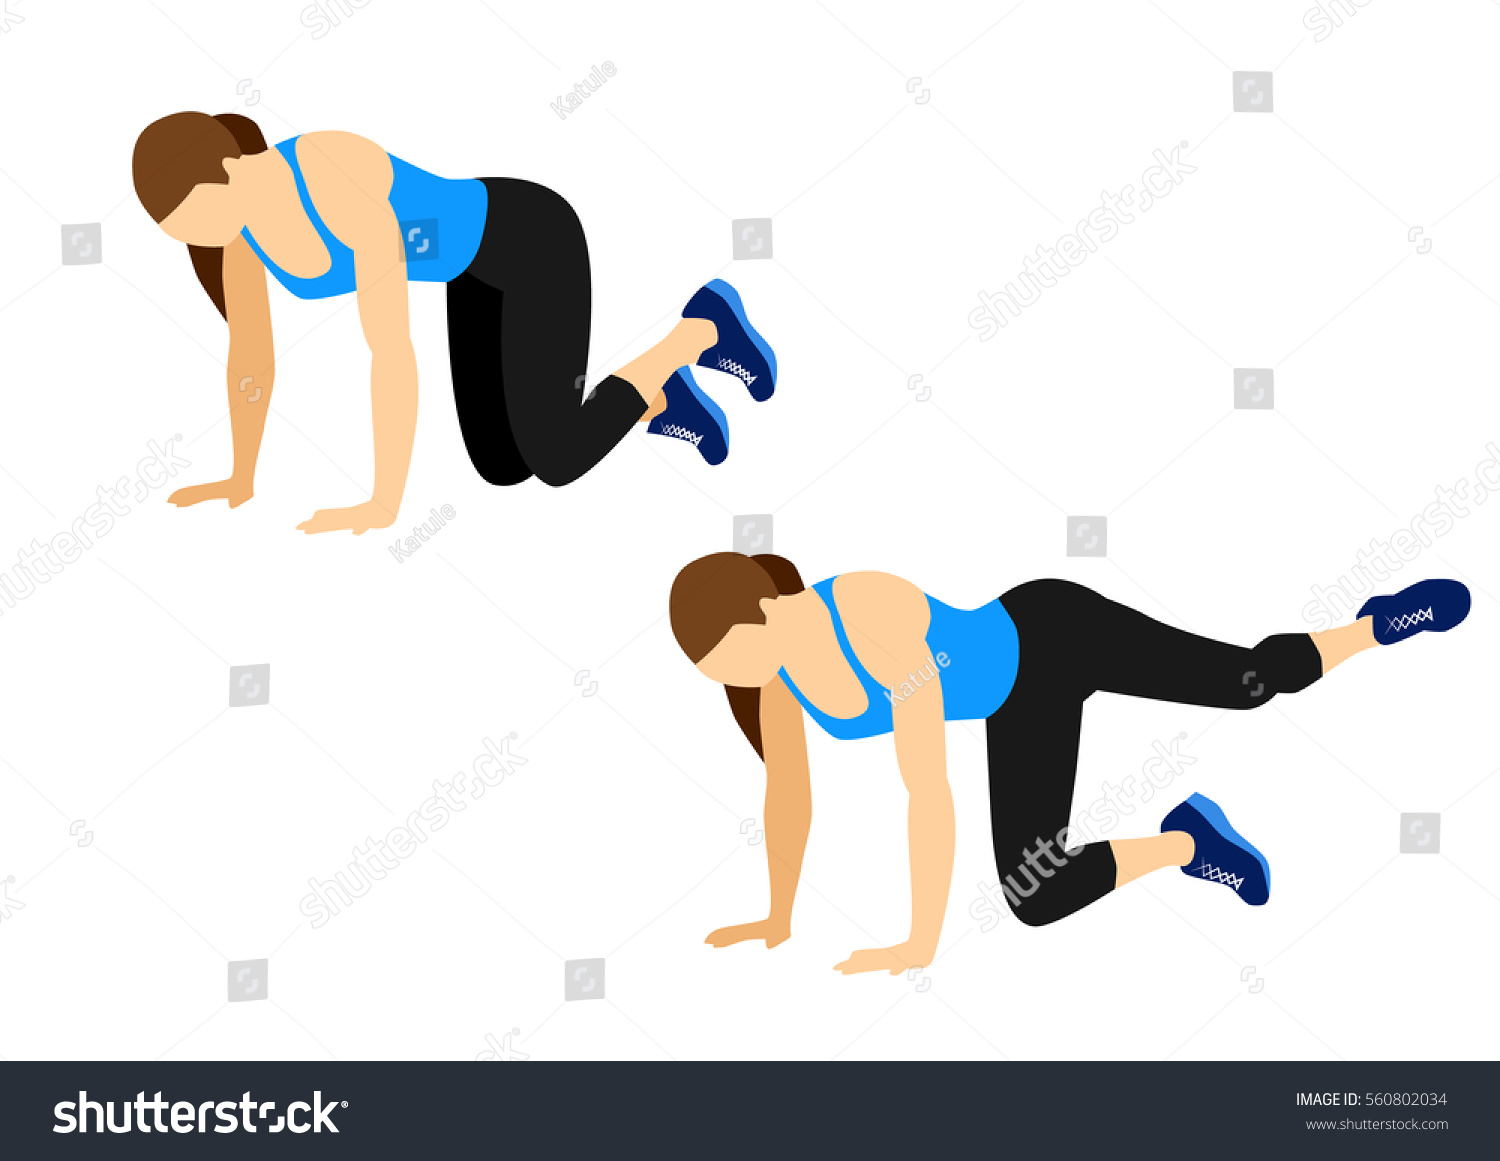 stock-vector-fitness-exercises-fire-hydrants-560802034.jpg